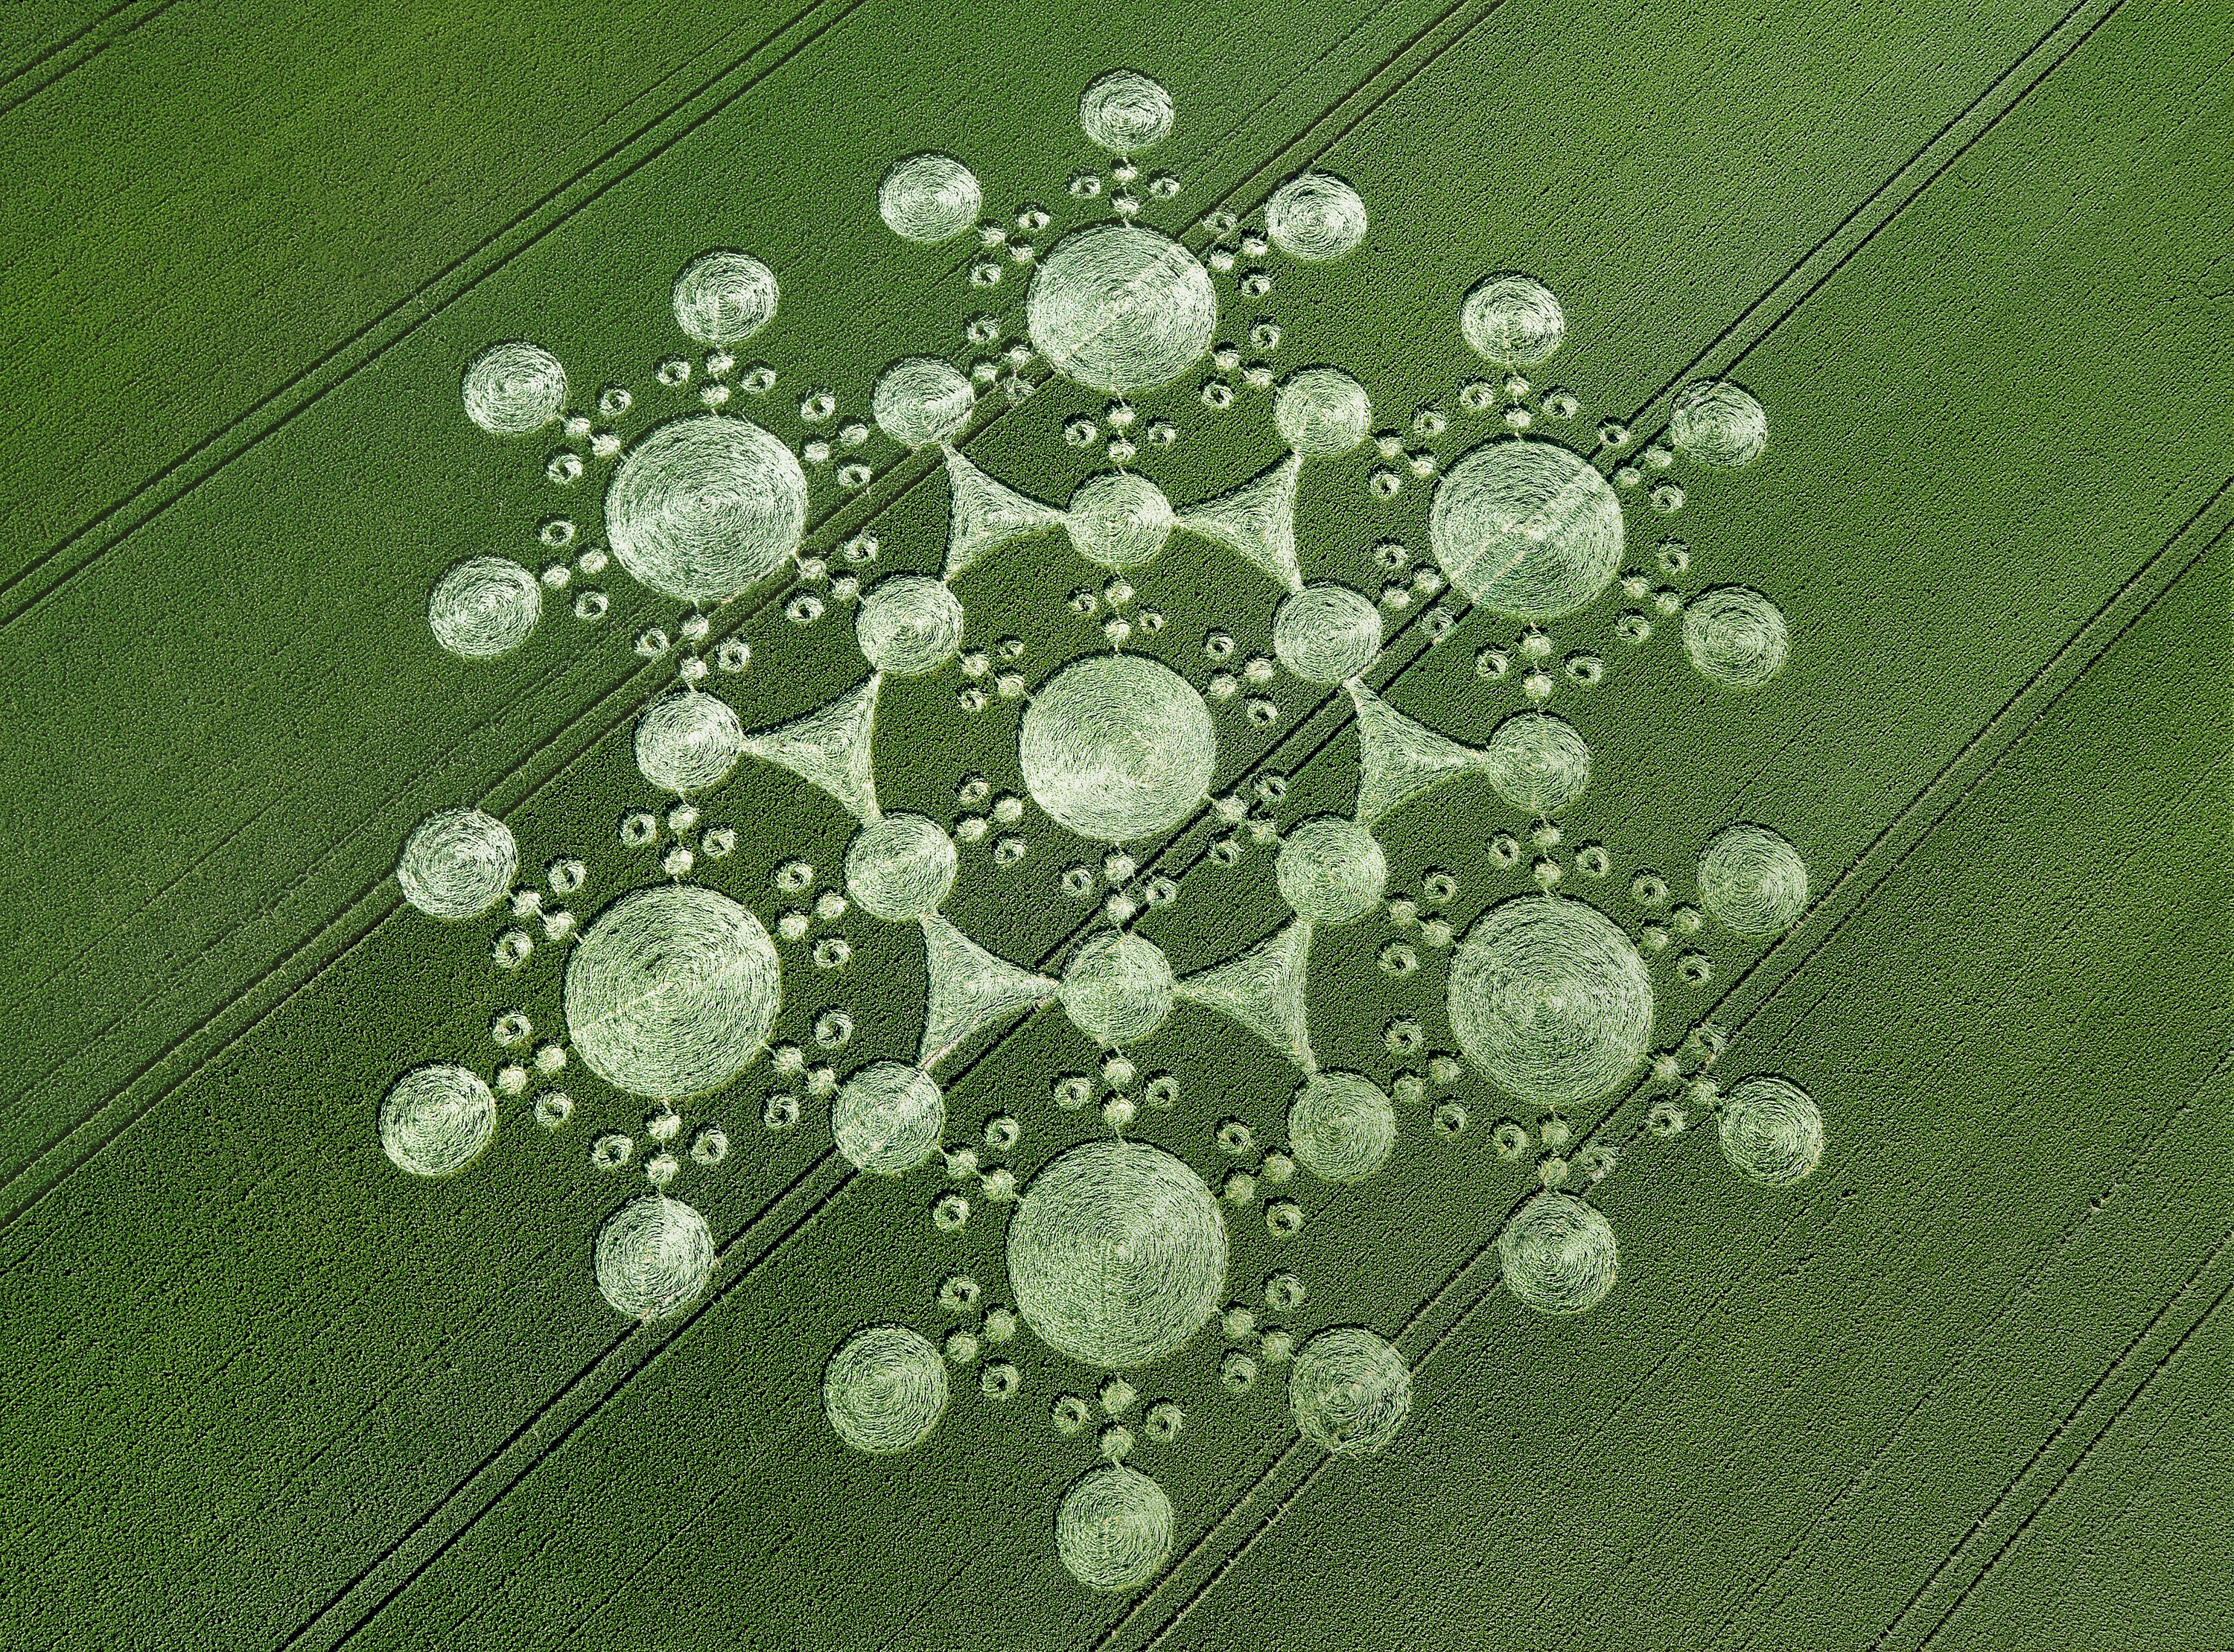 Crop Circle, Photo caption_Steve Alexander